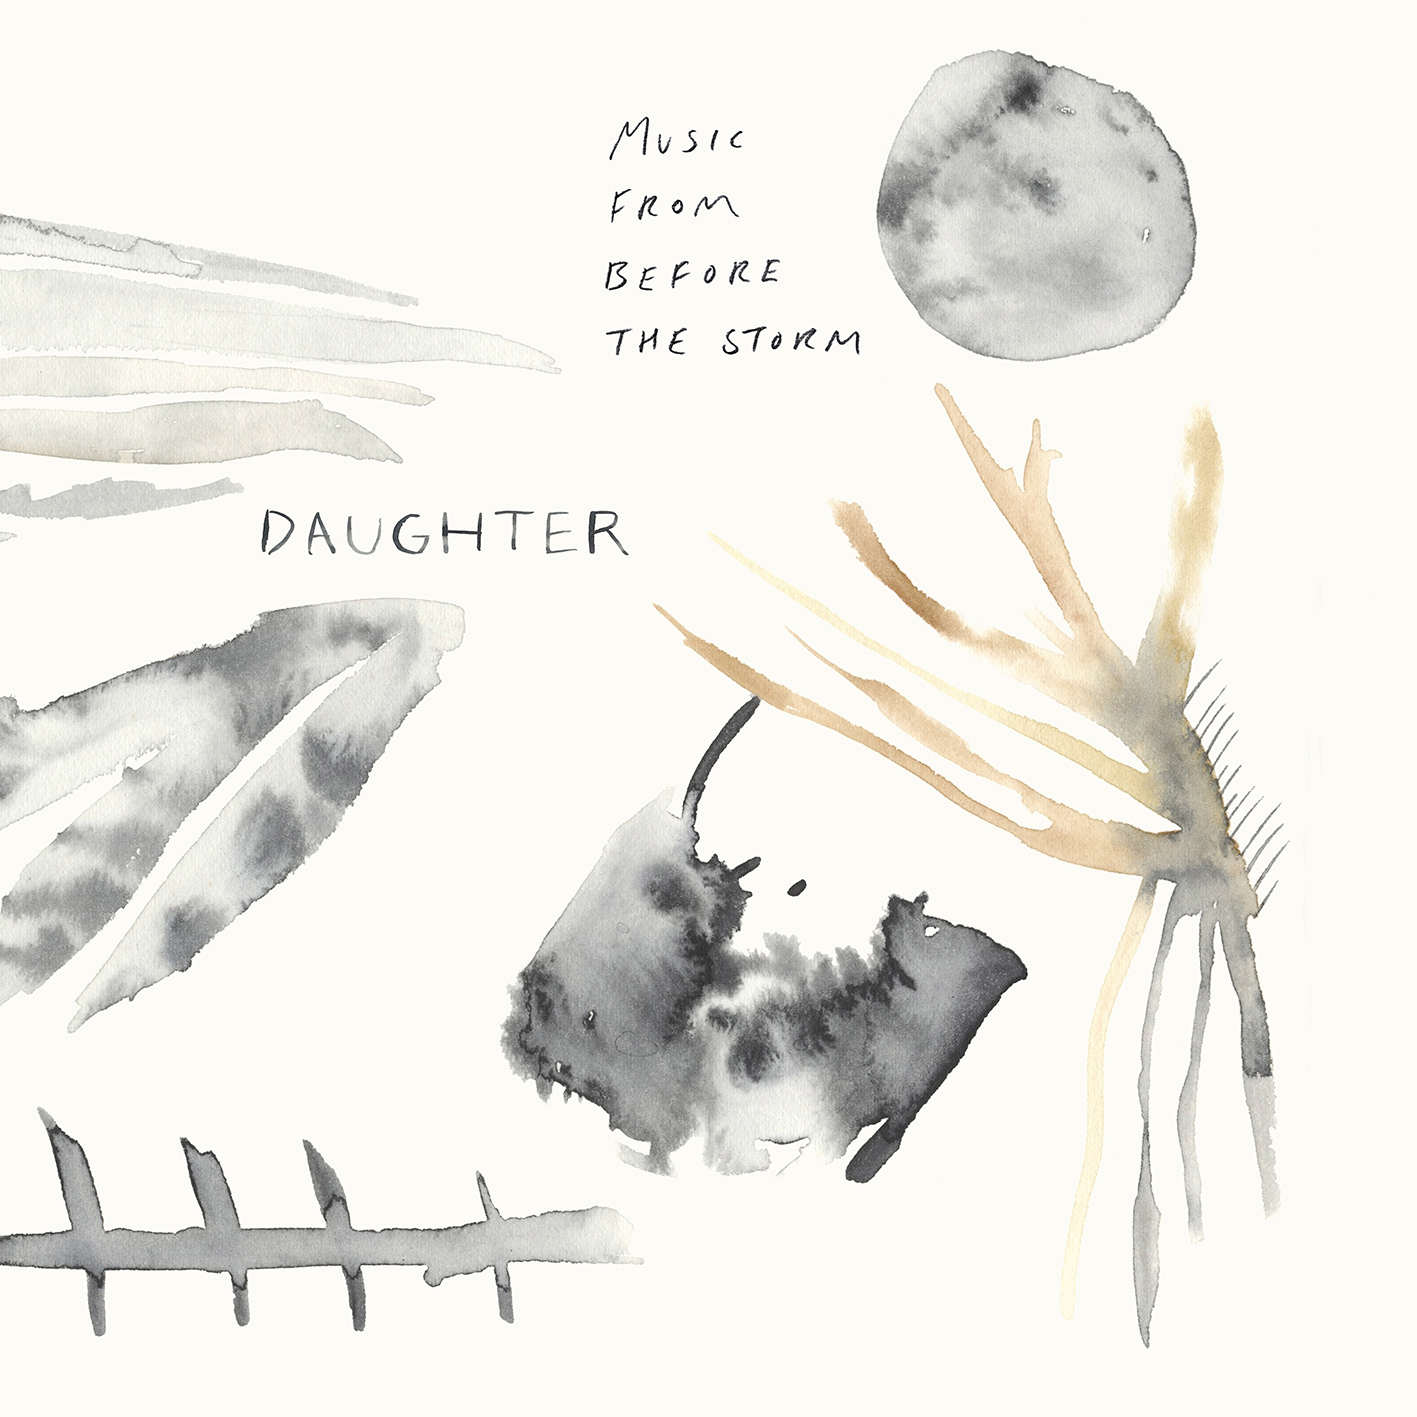 Watercolour and cover design by Lindsay McDonagh for Daughter album Music from before the storm